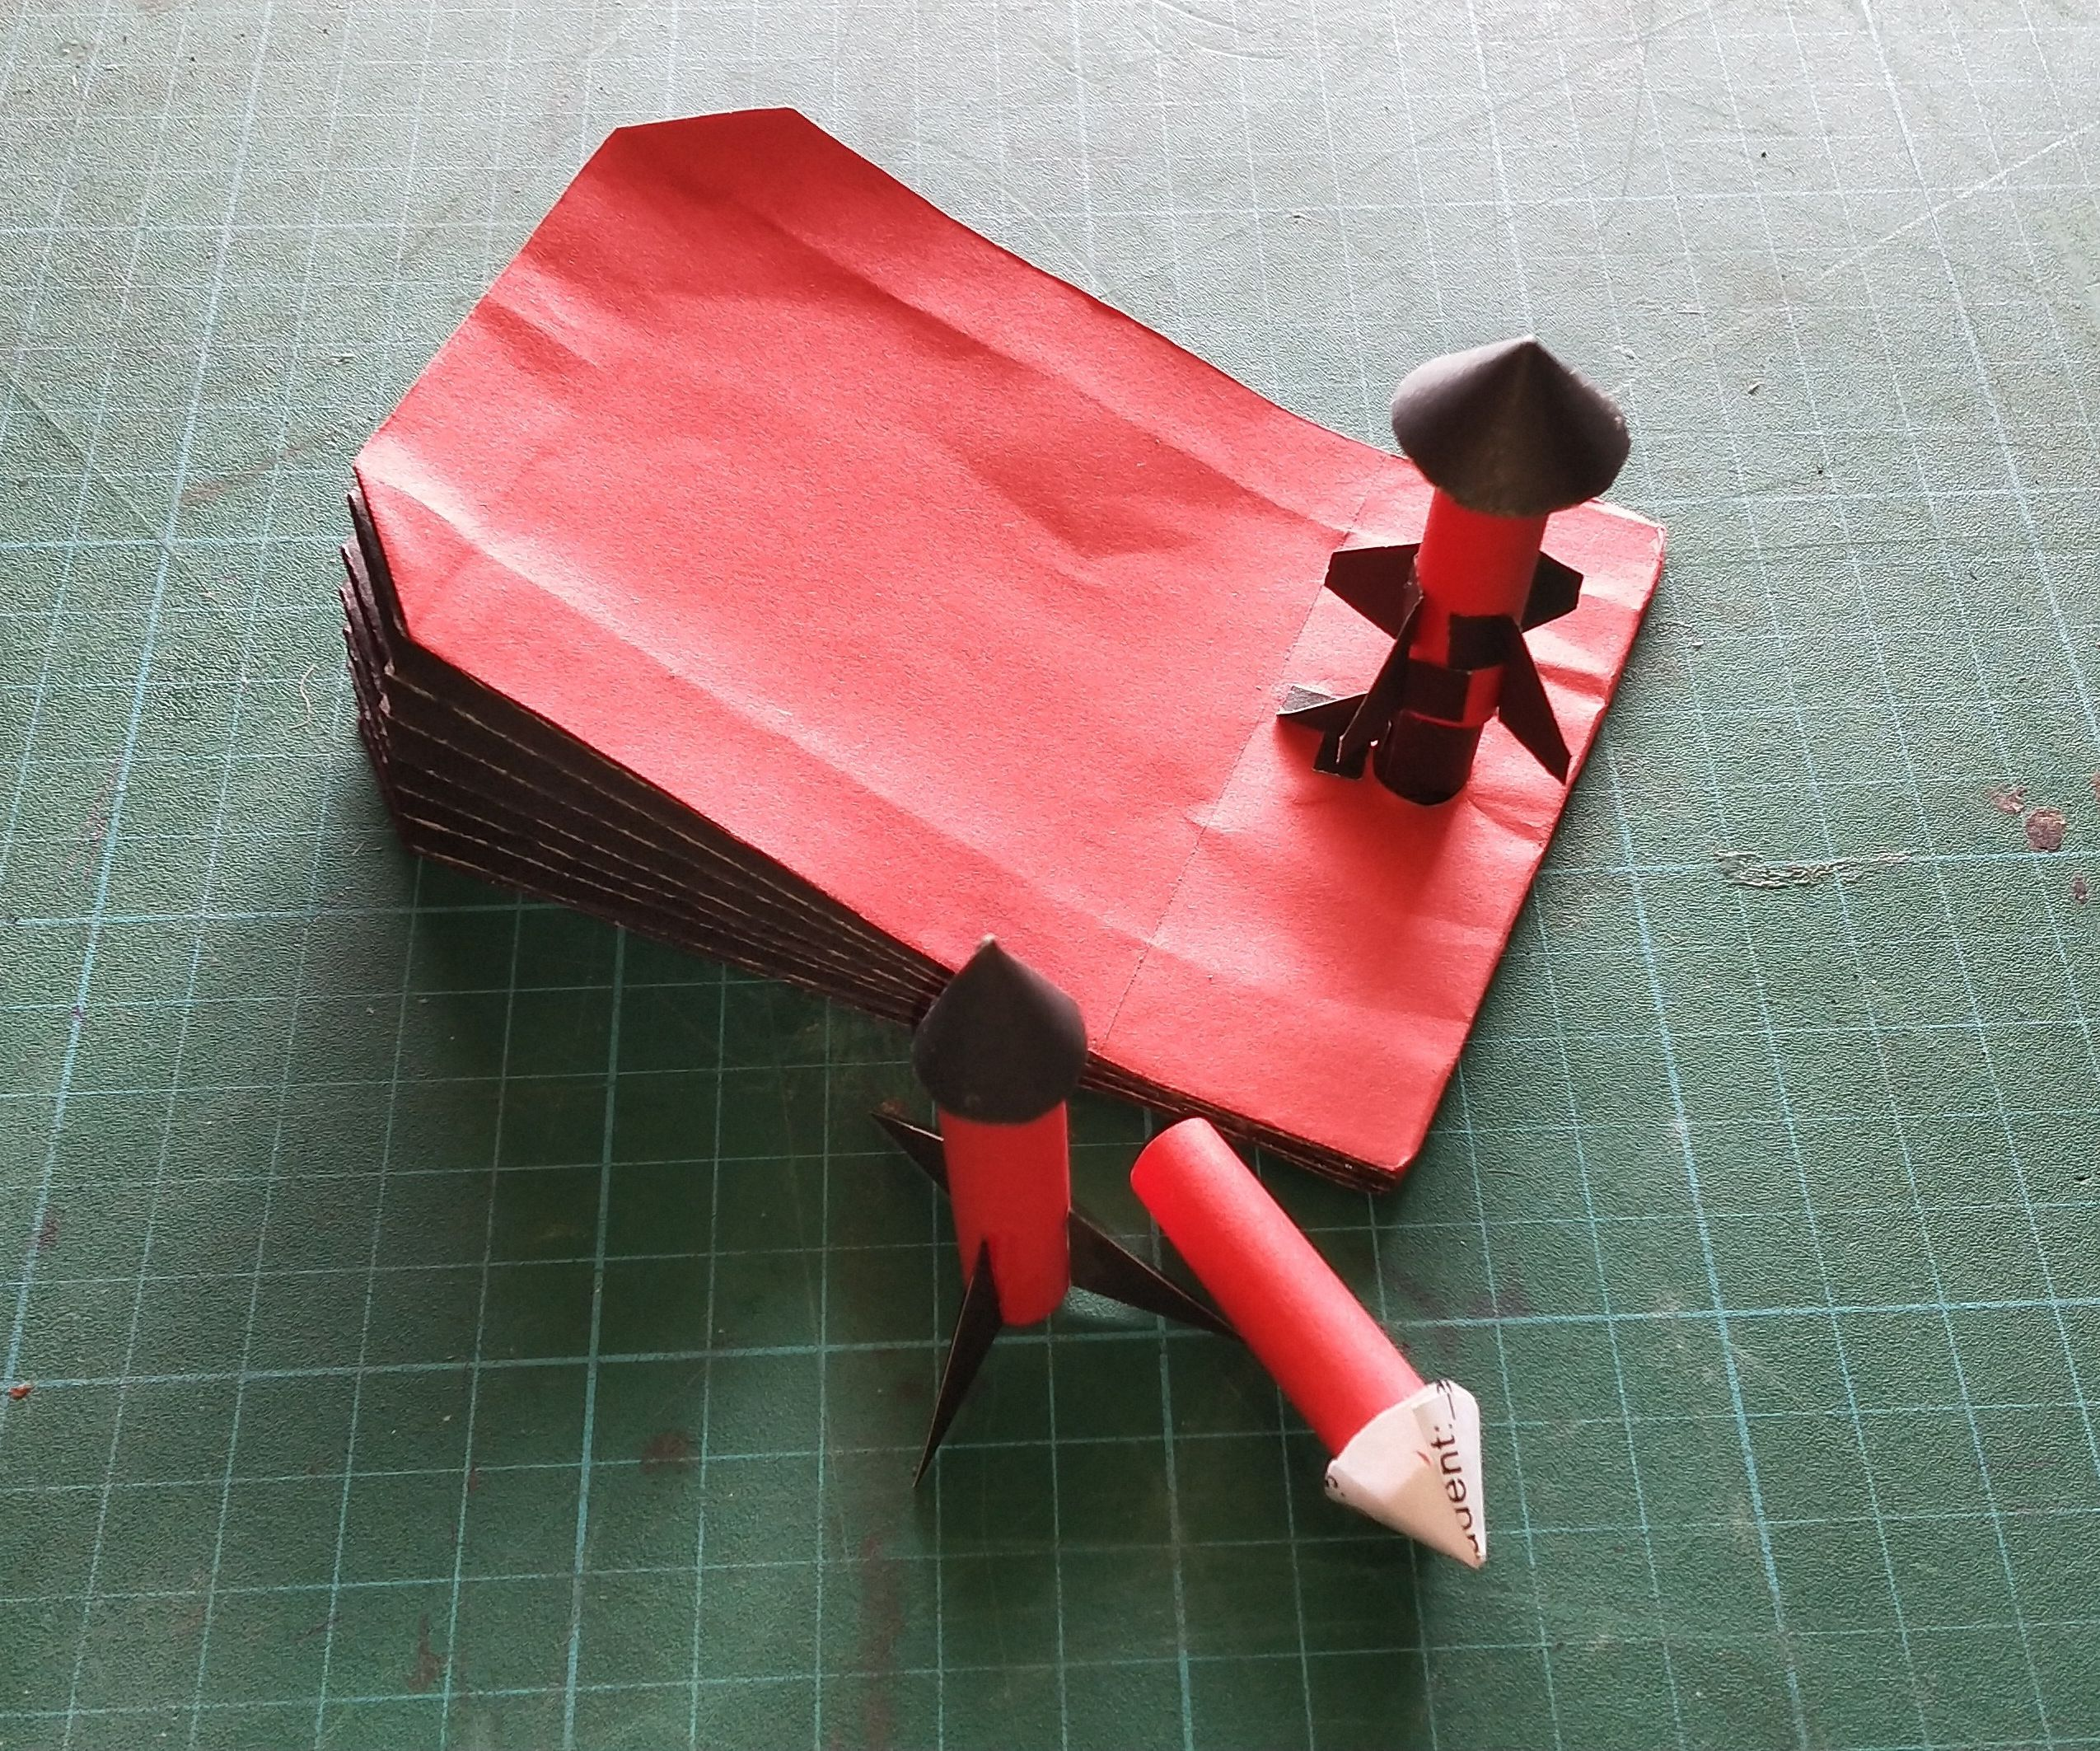 Paper-craft Rocket and Rocket Launcher